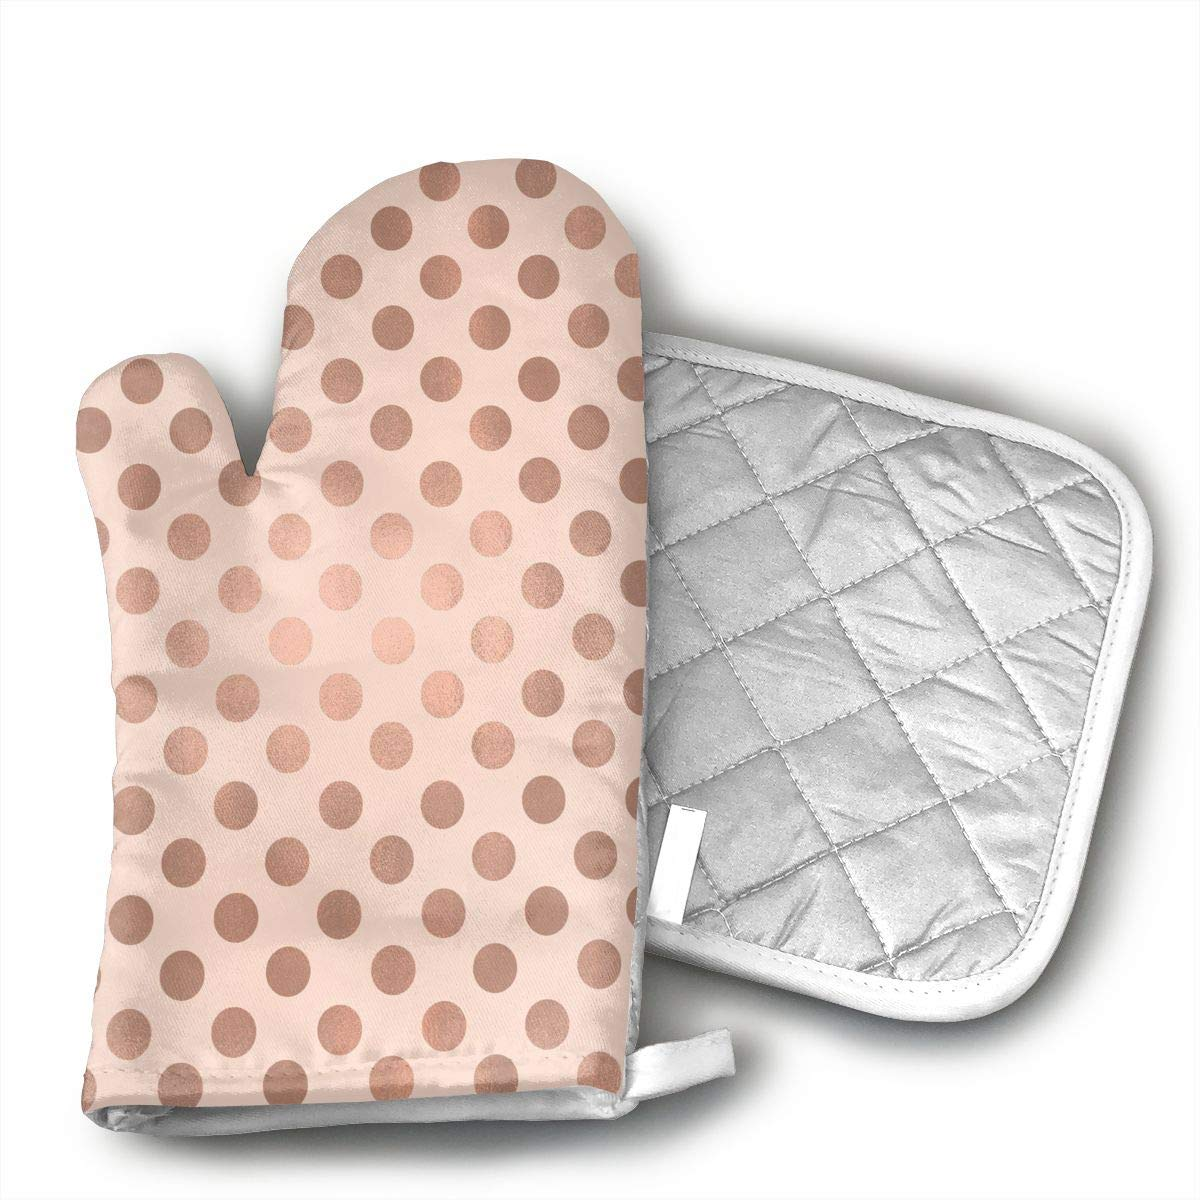 LALABULU Oven Mitts Rose Gold Dog Pattern Non-Slip Silicone Oven Mitts, Extra Long Kitchen Mitts, Heat Resistant to 500Fahrenheit Degrees Kitchen Oven Gloves